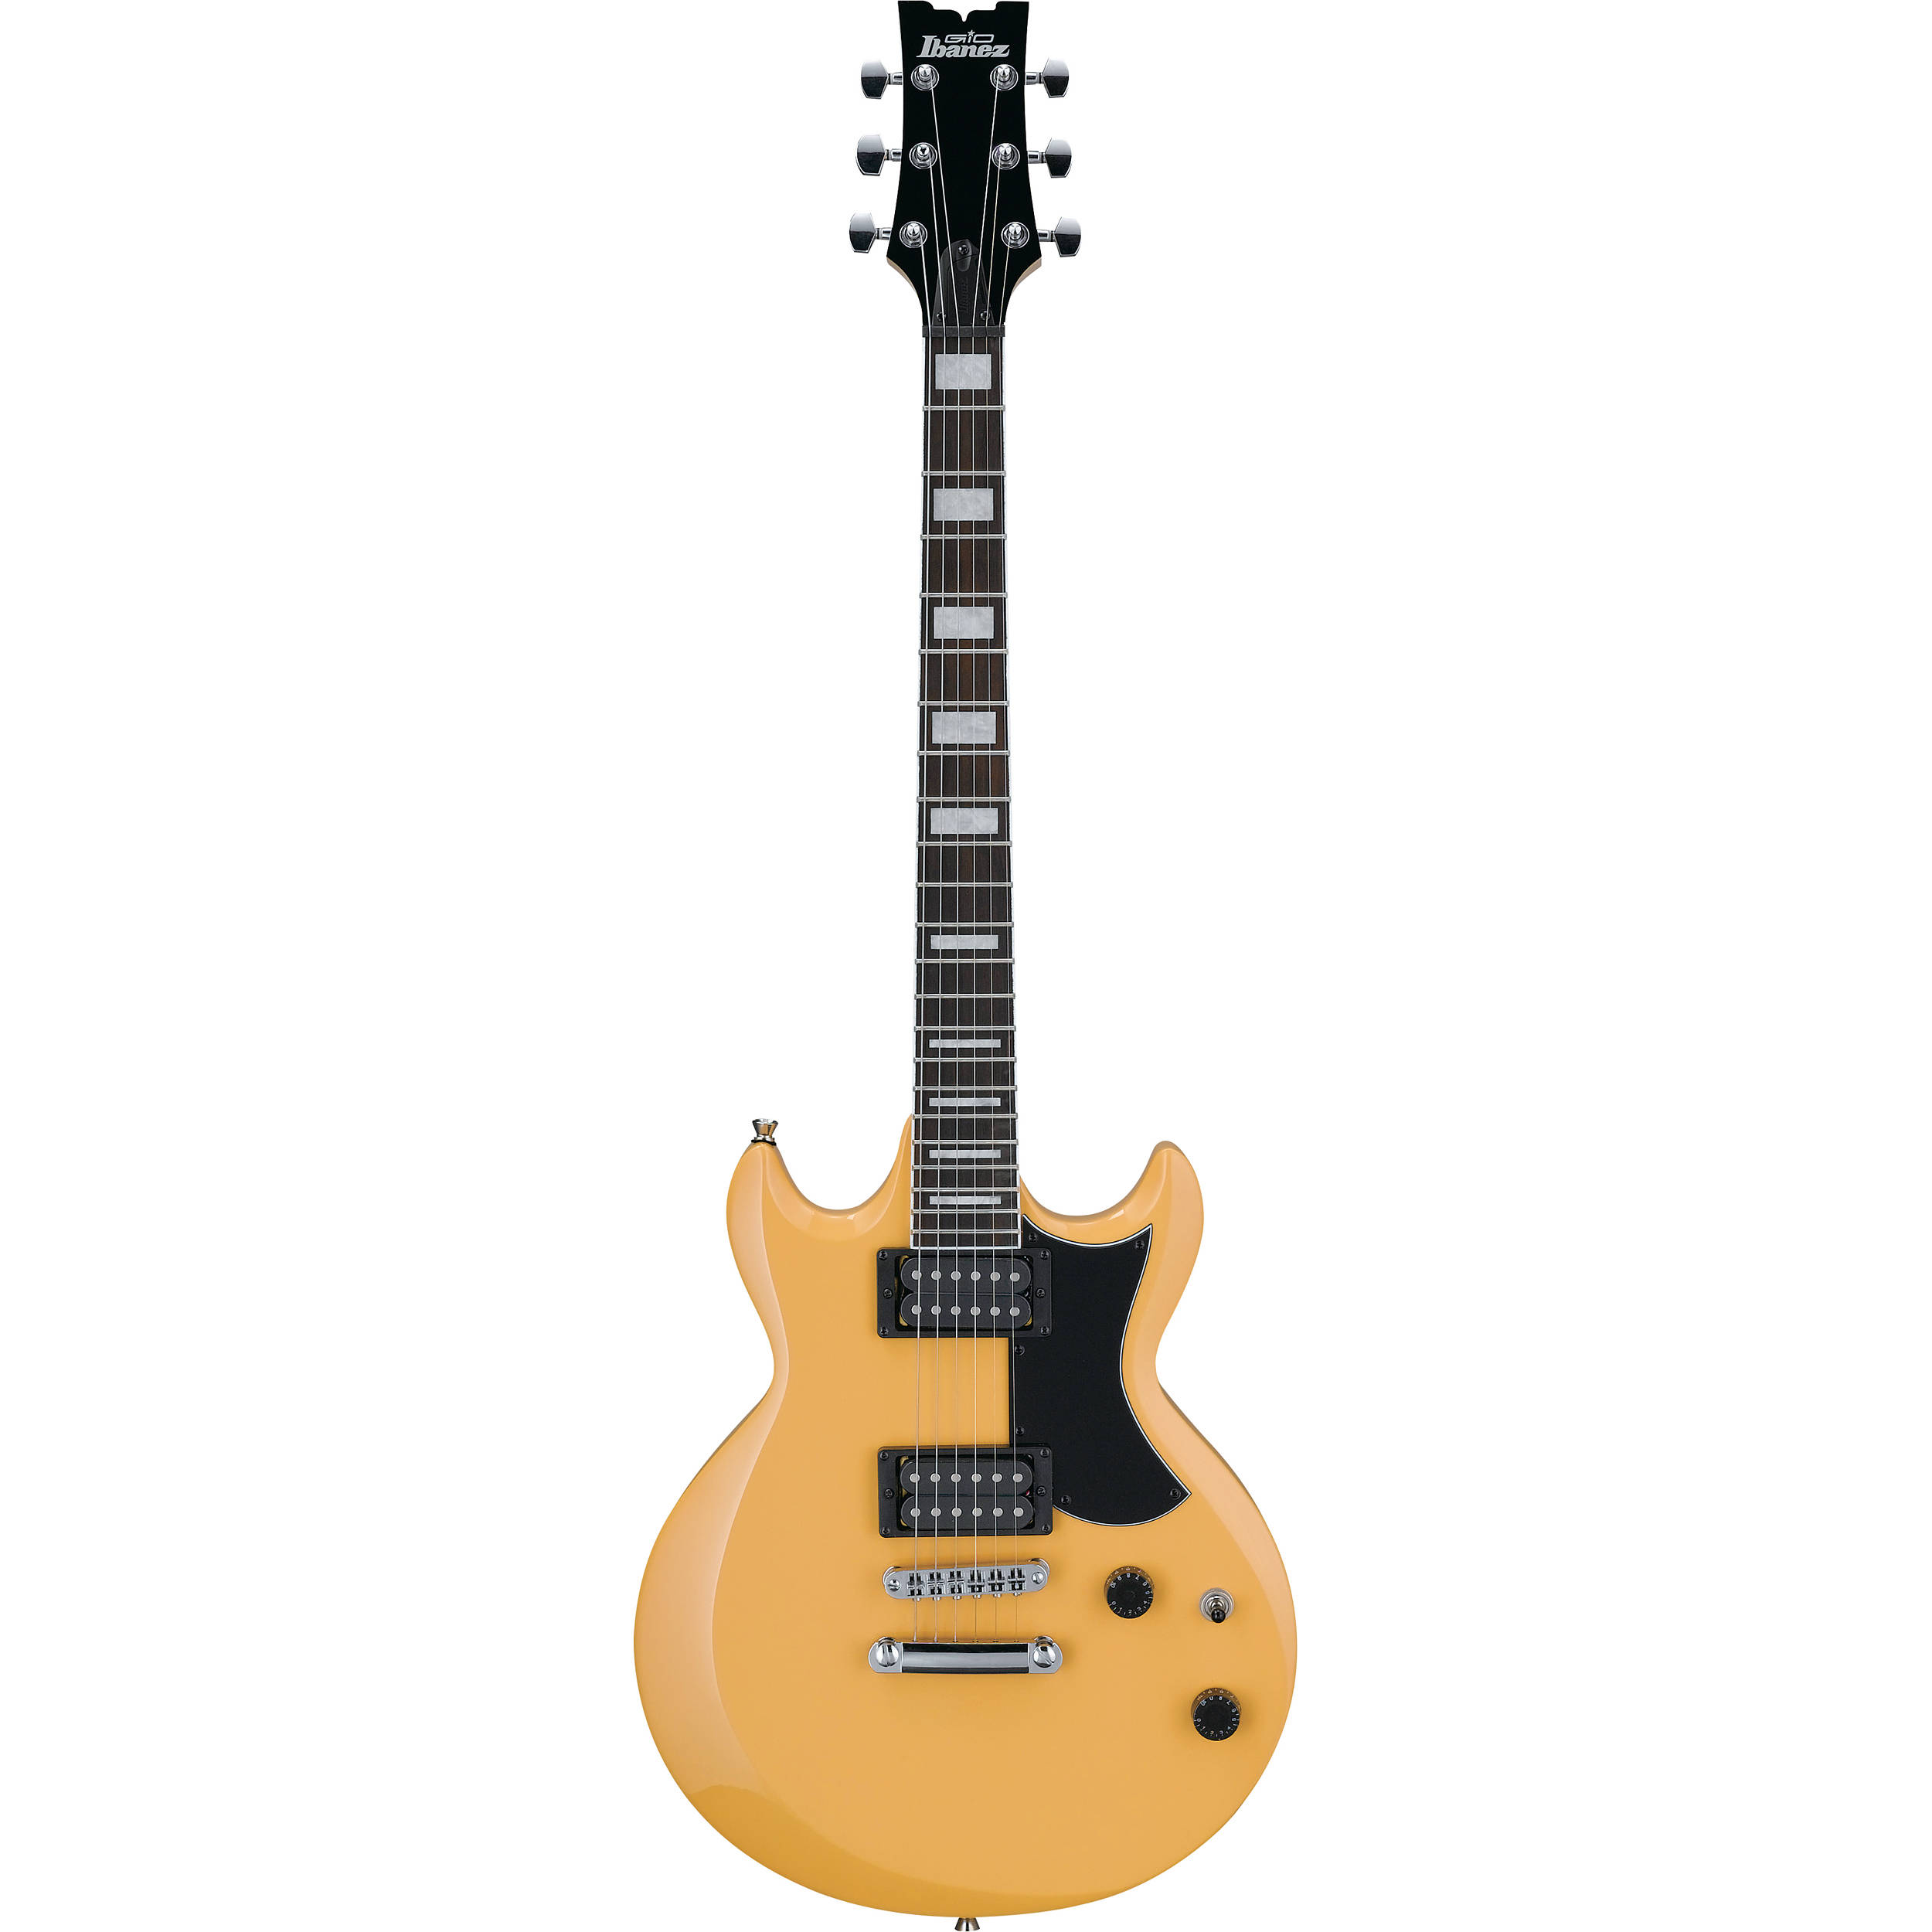 ibanez gax30 gio series electric guitar mustard gax30mst b h. Black Bedroom Furniture Sets. Home Design Ideas